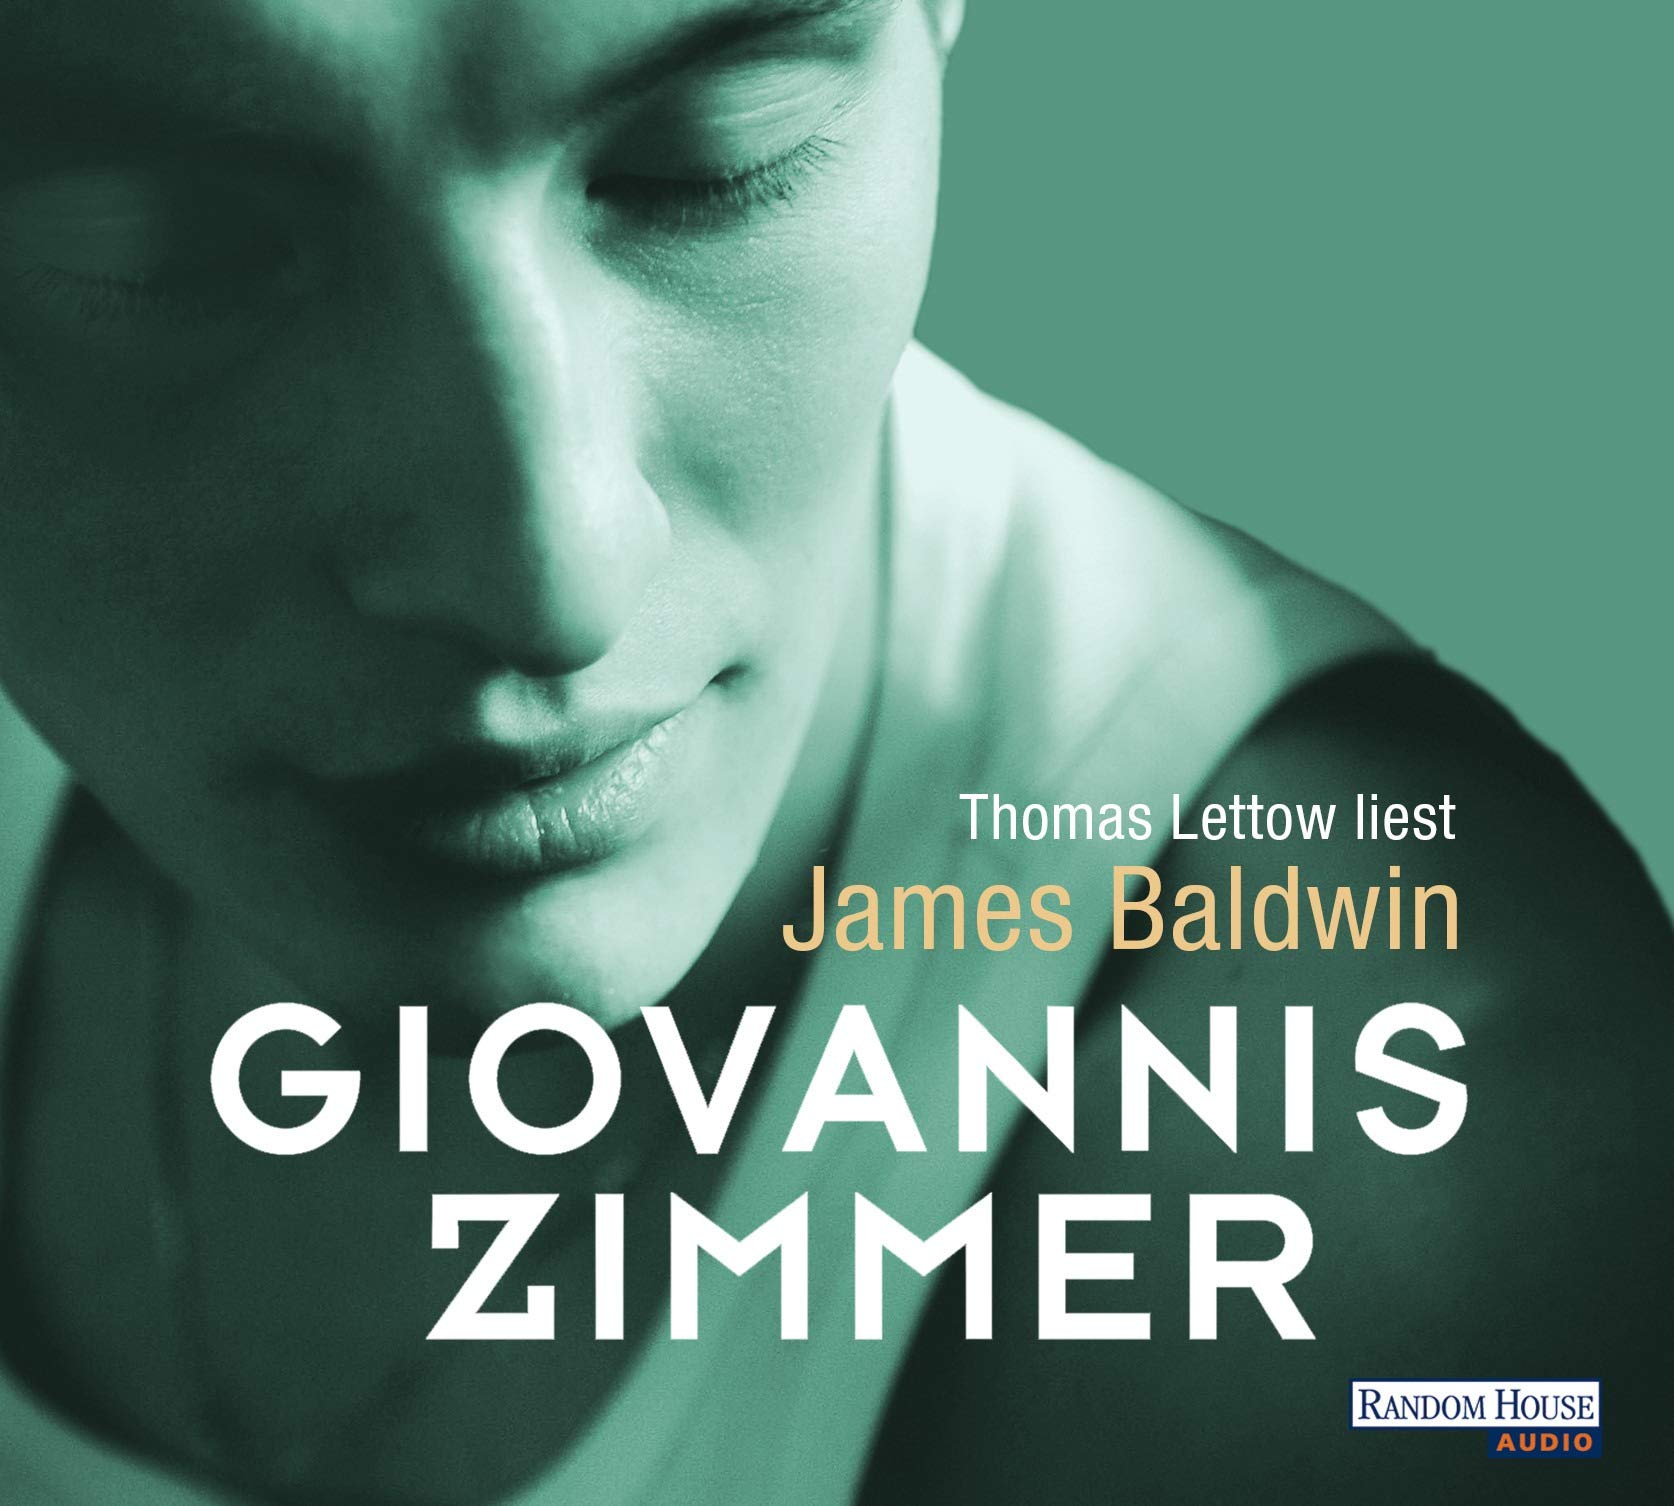 Giovannis Zimmer: Amazon.de: Baldwin, James, Lettow, Thomas, Mandelkow,  Miriam: Bücher